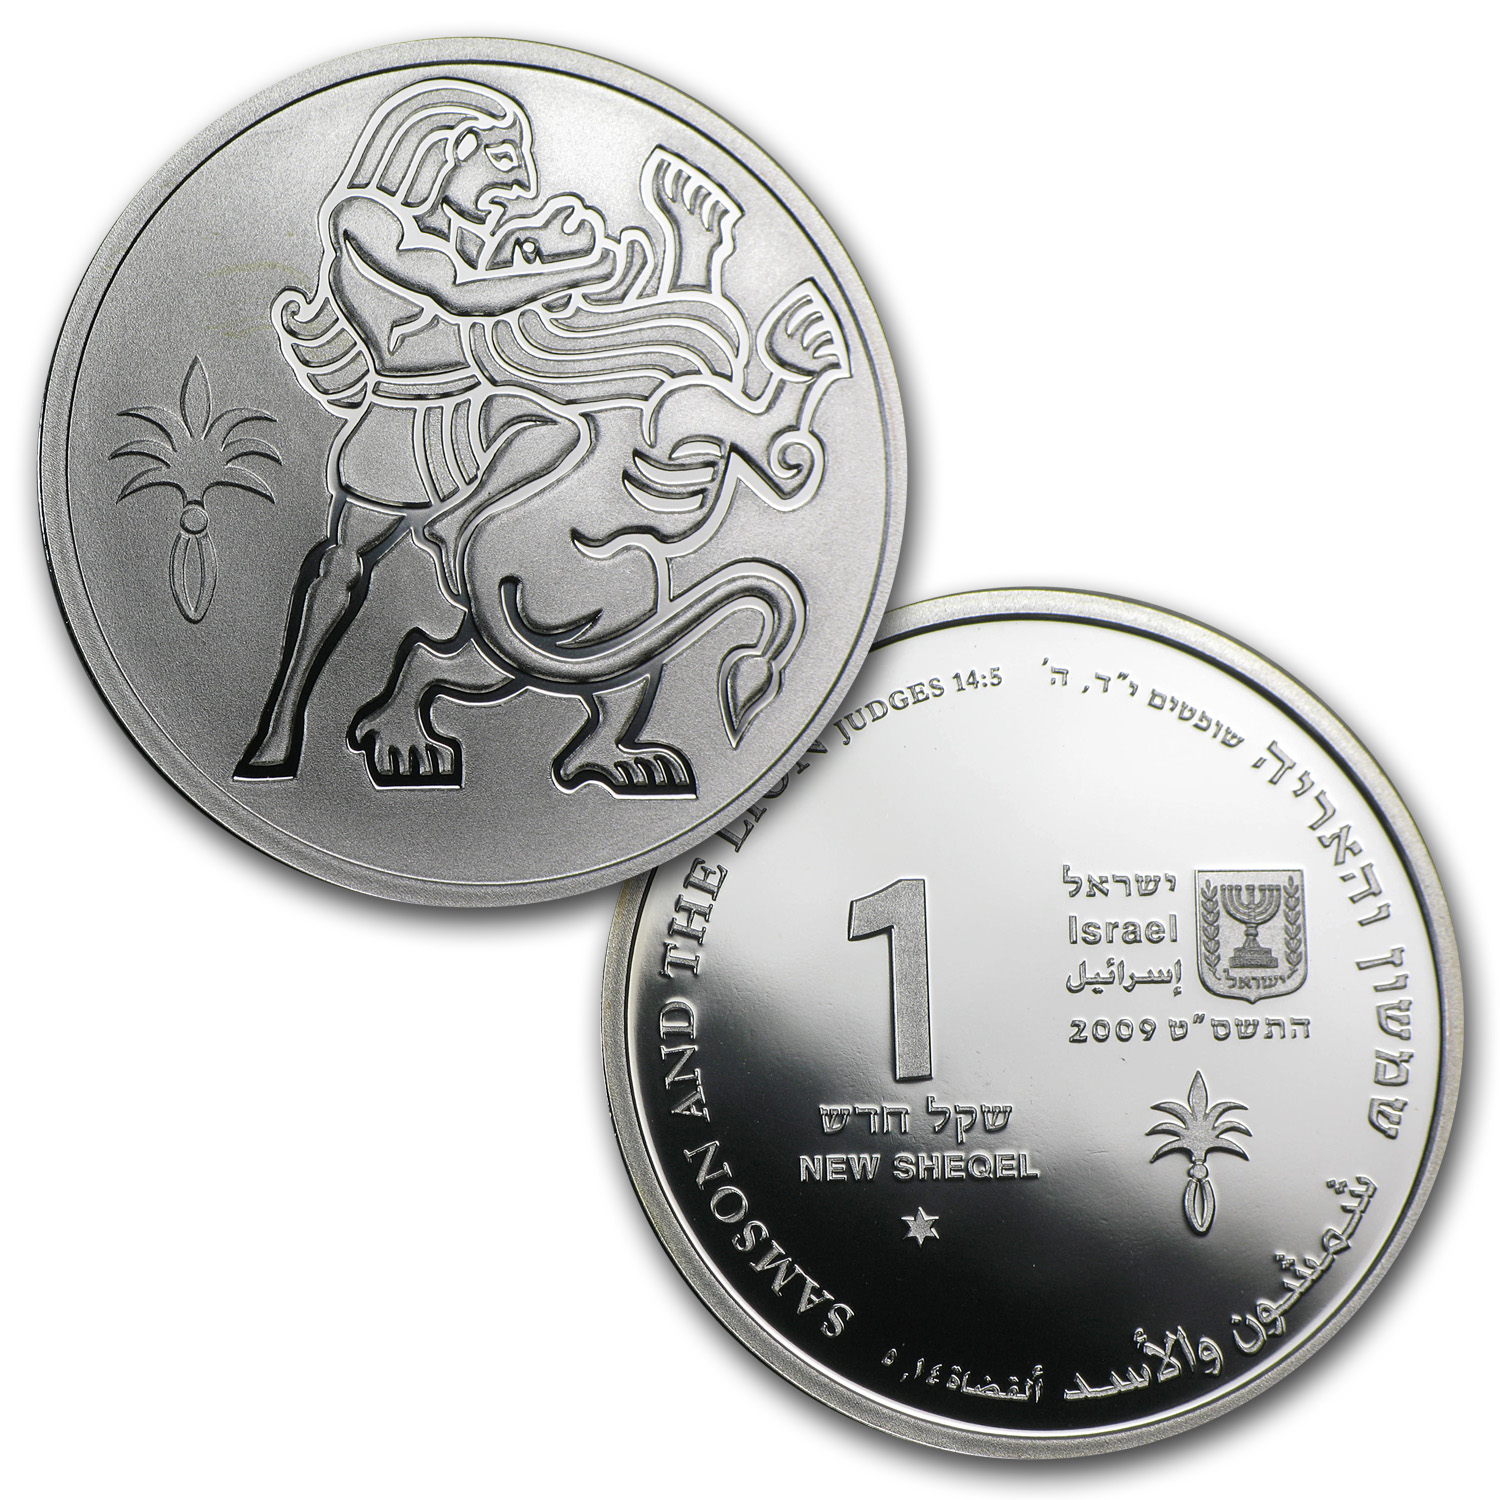 2009-11 Israel 3-Coin Silver 1 NIS Biblical Art Series Set